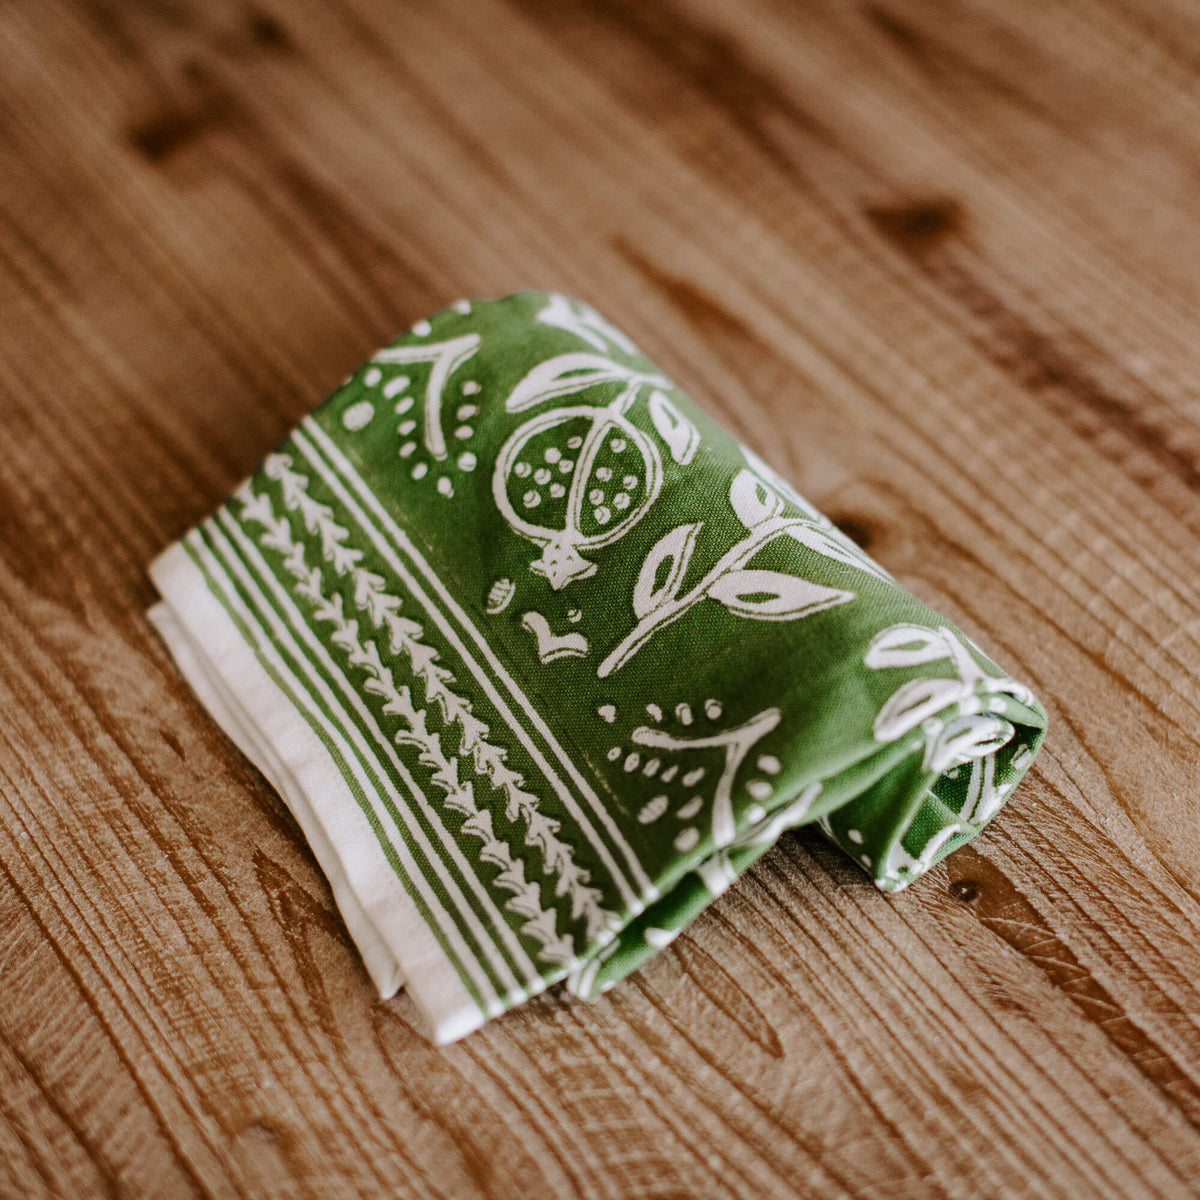 green and white patterned dish towel rolled up on a table